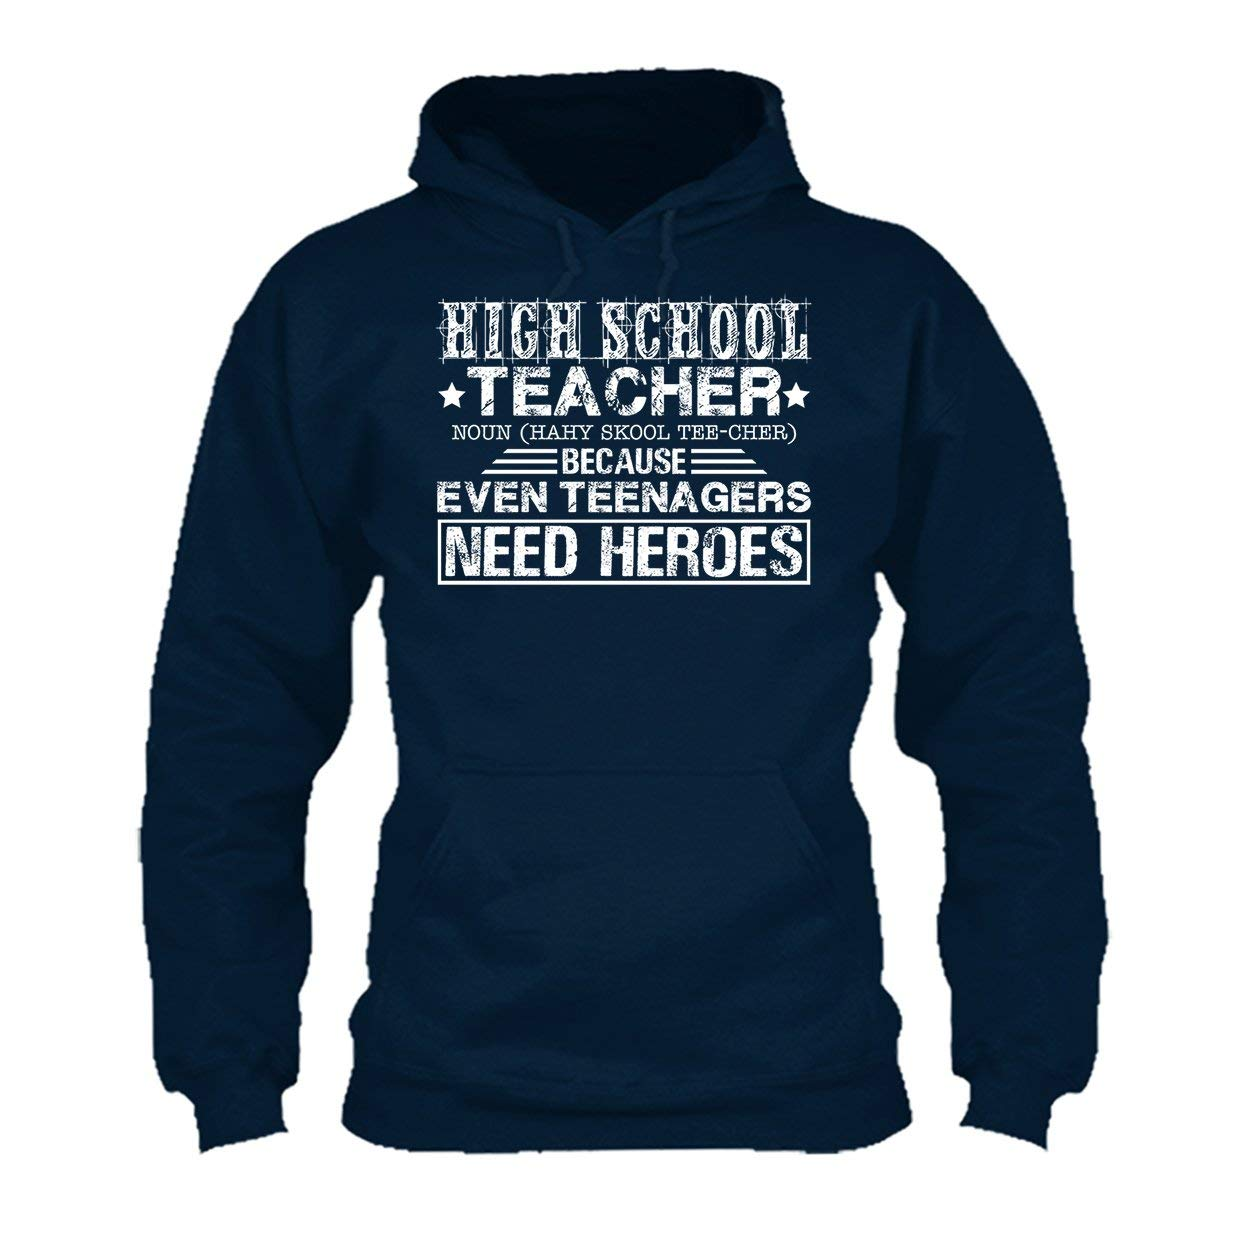 Sweatshirt Design Cool High School Teacher Definition Tshirt